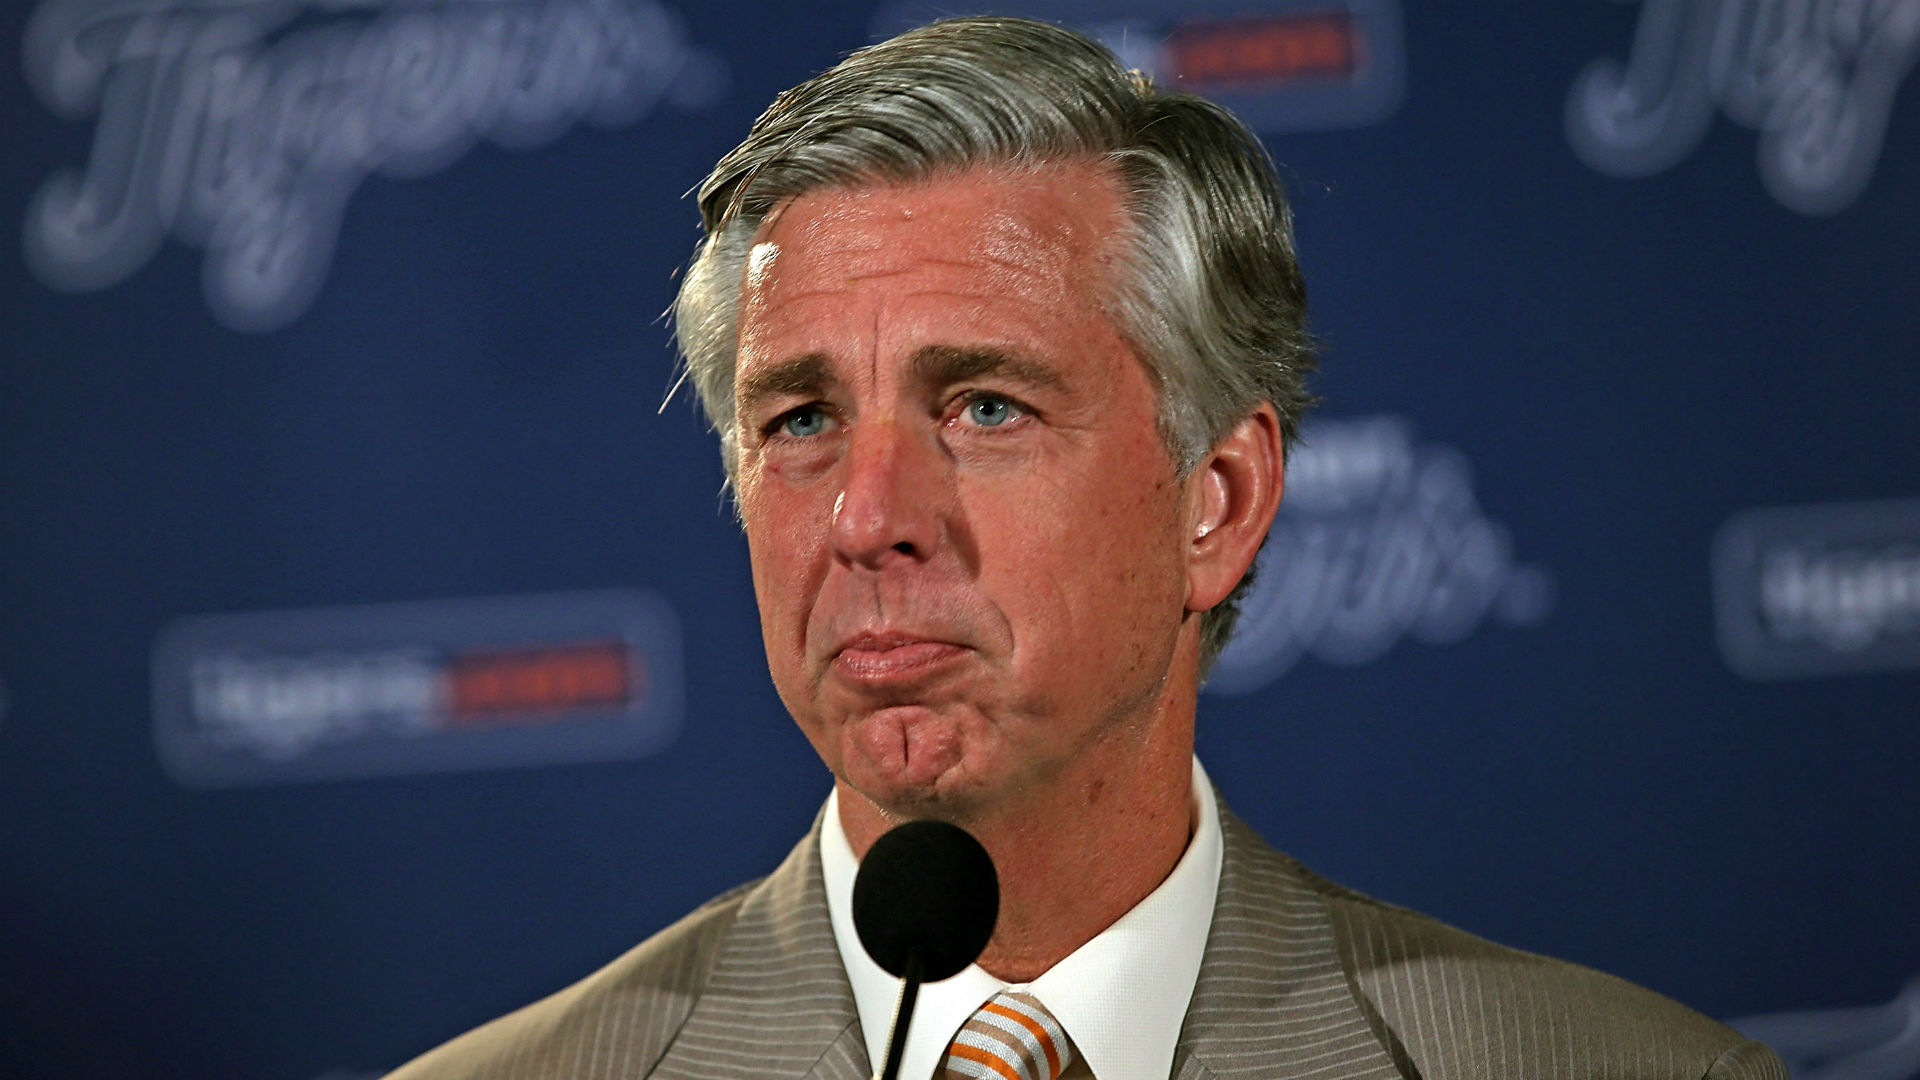 Dave Dombrowski out as Tigers' GM after 13 years